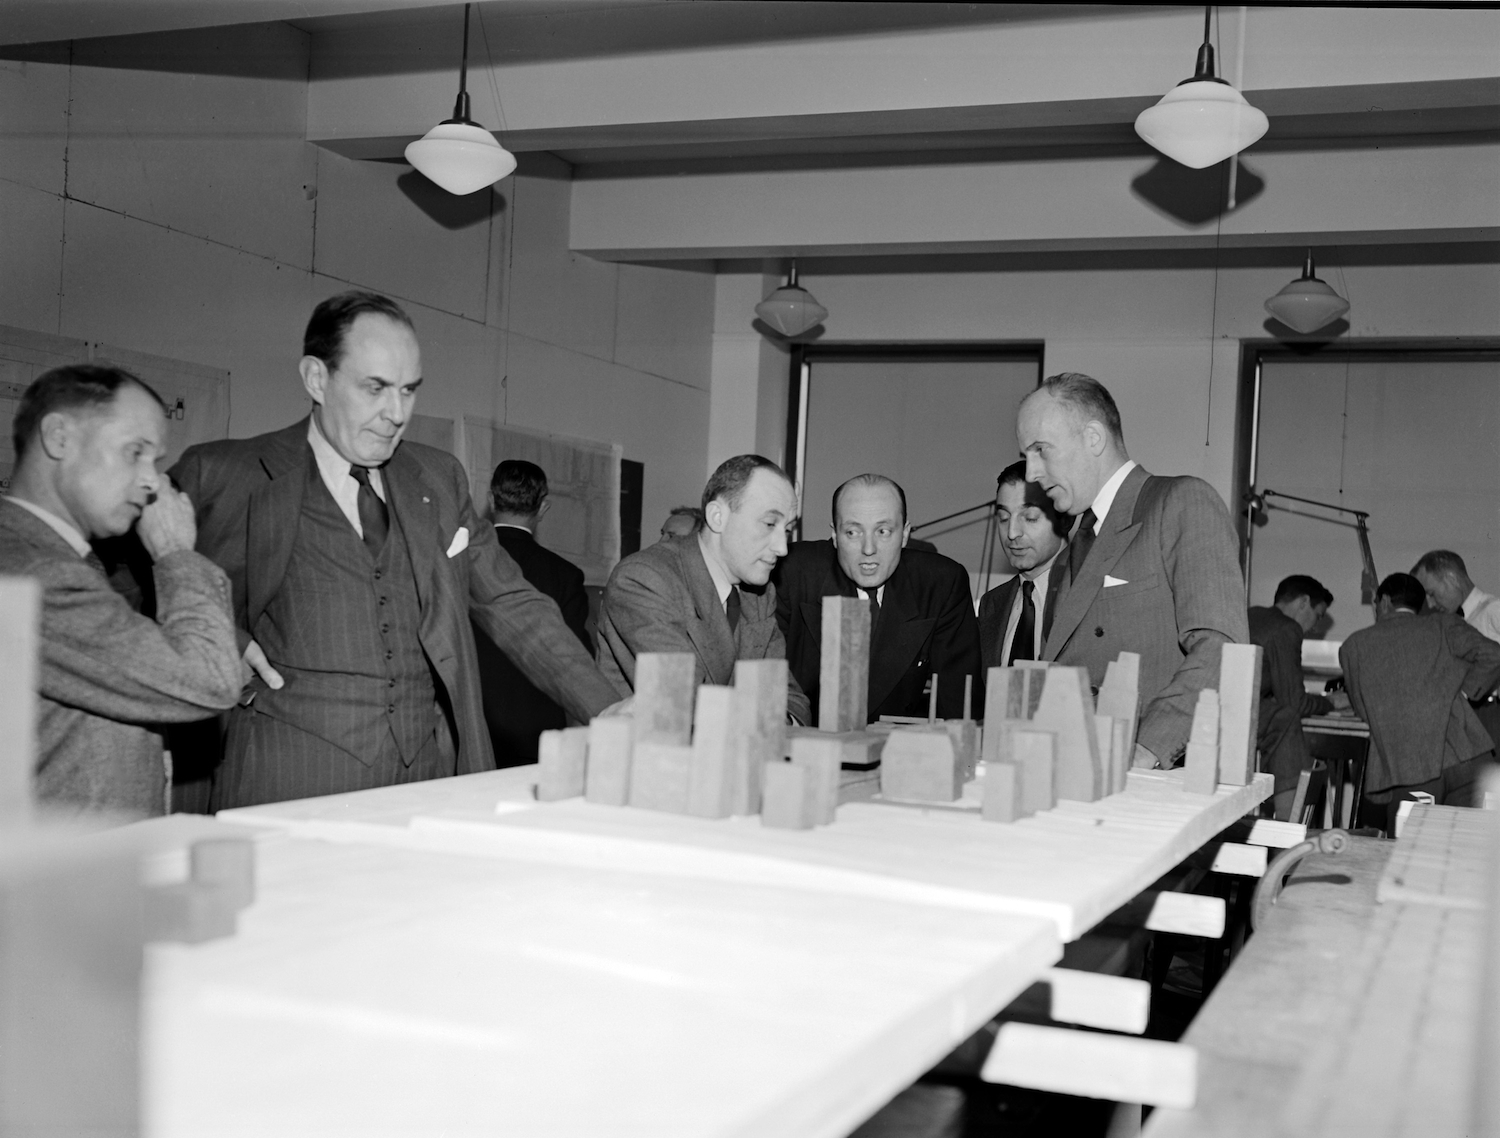 GIL CLARKE (SECOND FROM LEFT) STUDYING MASSING PLAN (HARRISON AND ABRAMOVITZ AT END OF TABLE) - UNITED NATIONS ARCHIVES